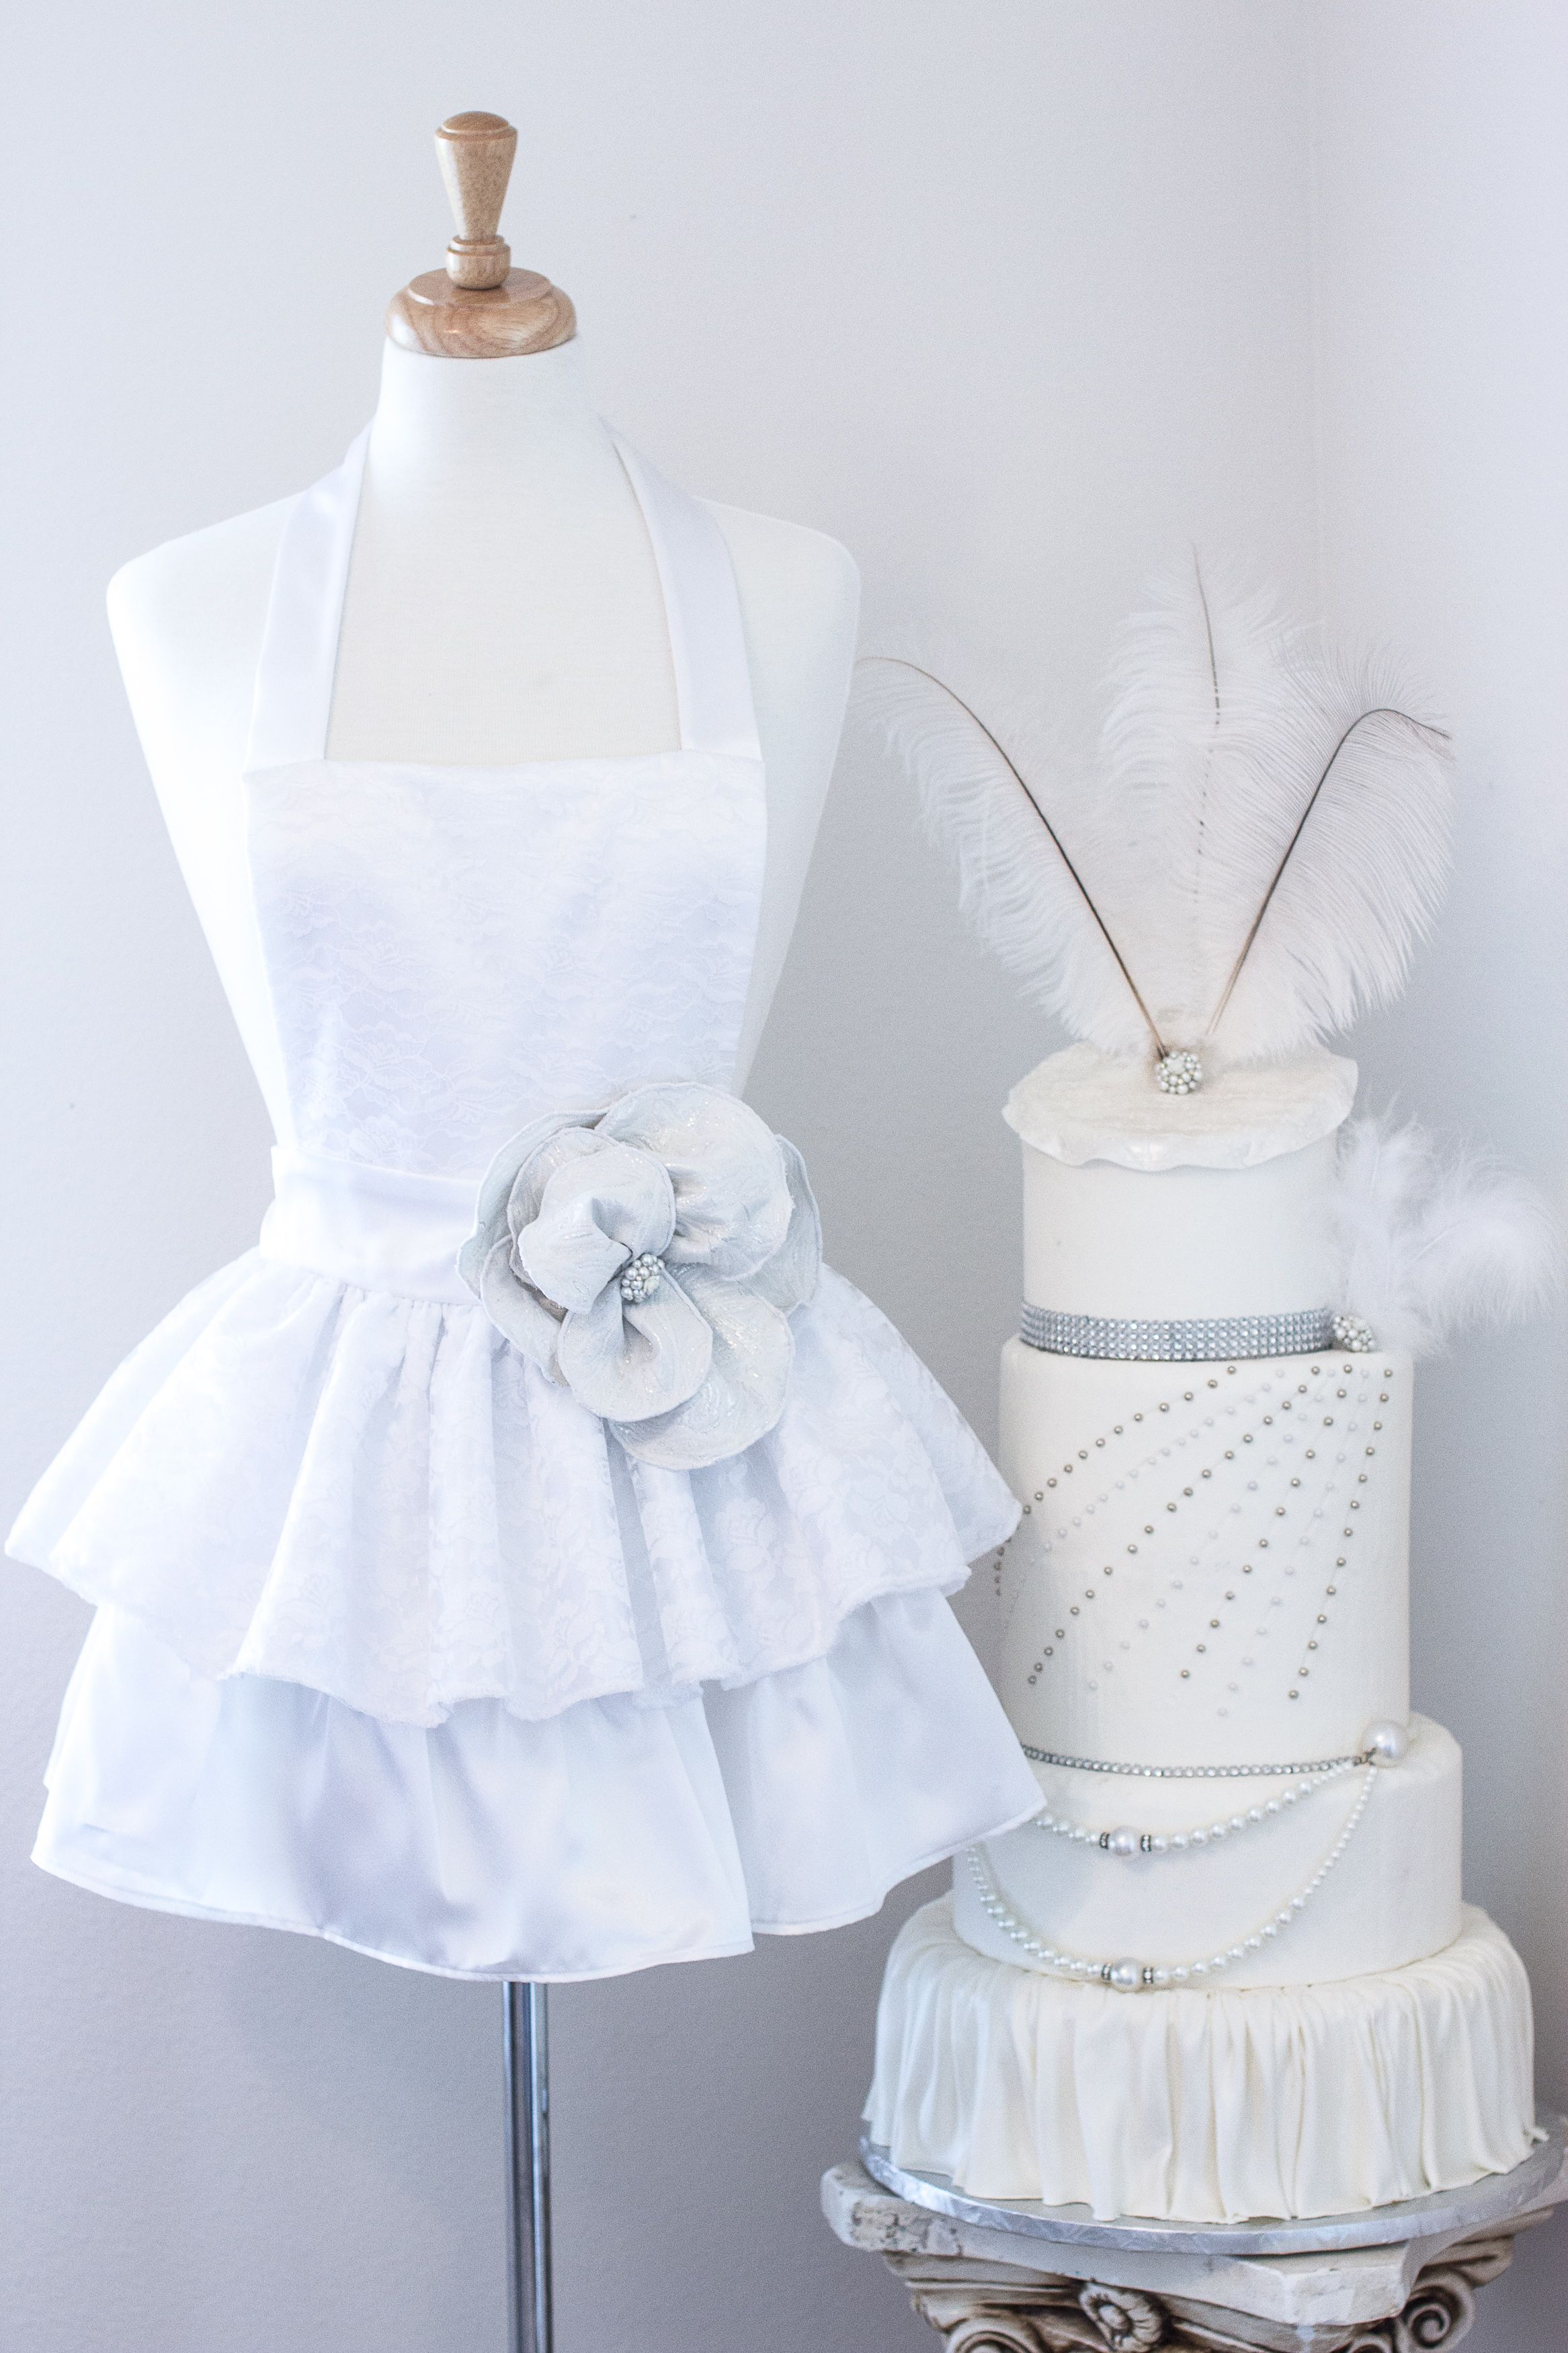 White lace apron wedding - Enticing Cake Boutique Introduces Their Couture Line Of Aprons Fit For A Queen This Apron White Satinwhite Lacebridal